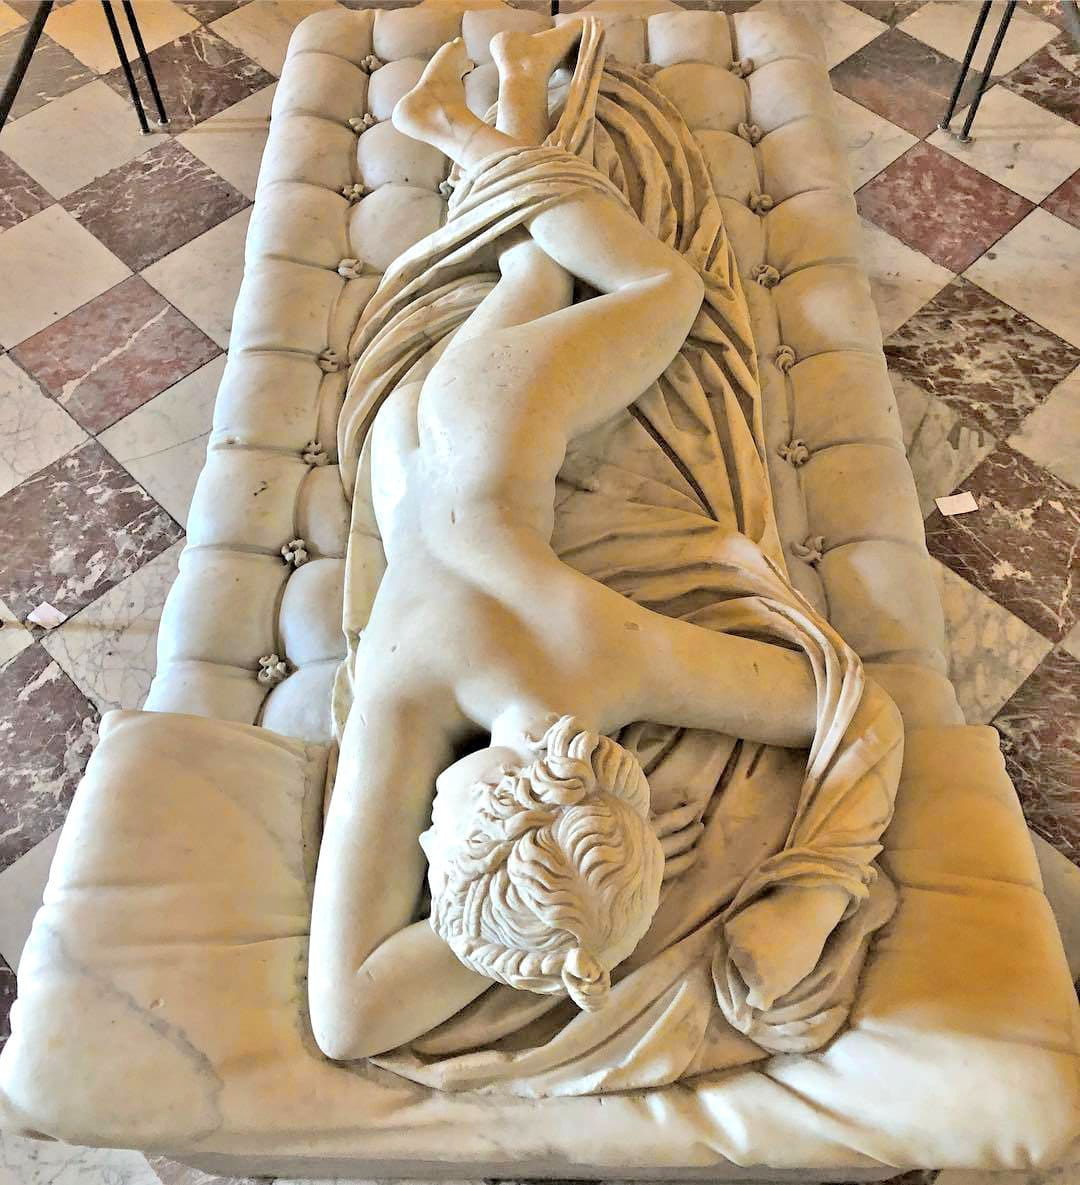 A sleeping hermaphrodite marble statue ,2th ce. AD - was found in the Baths of Diocletian in Rome.